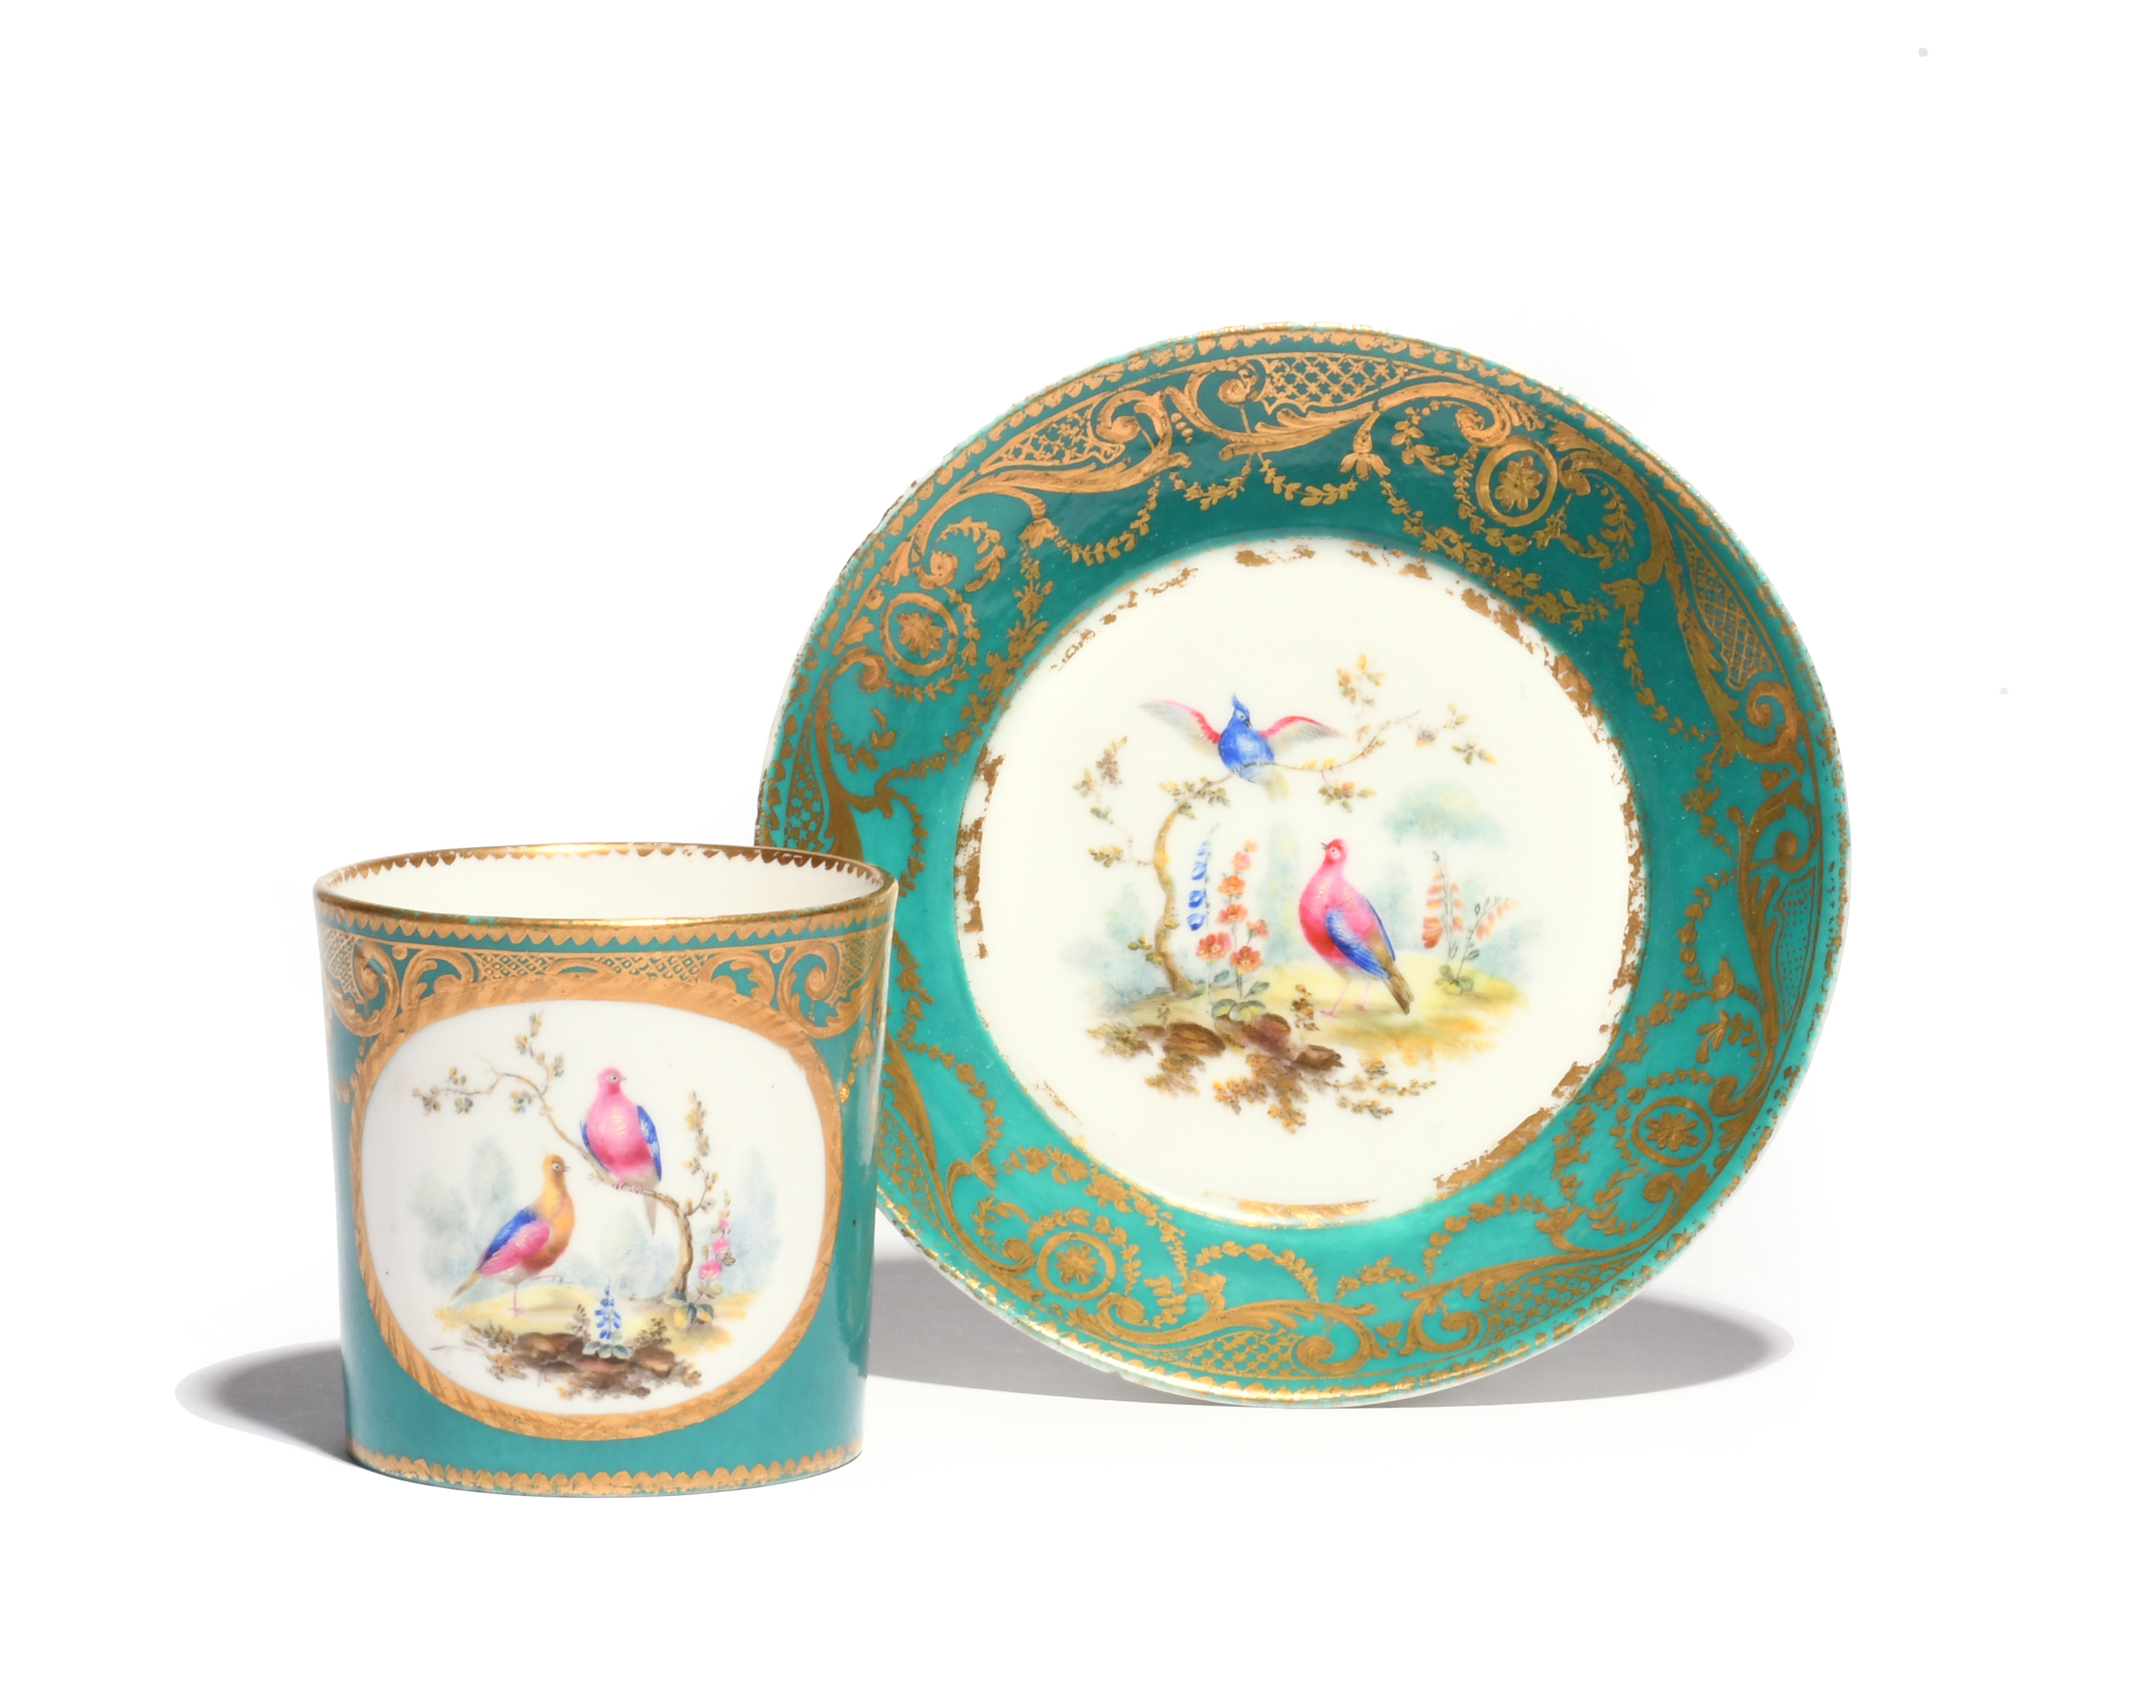 A Sèvres coffee can (gobelet litron) and saucer c.1760, later decorated perhaps in London with